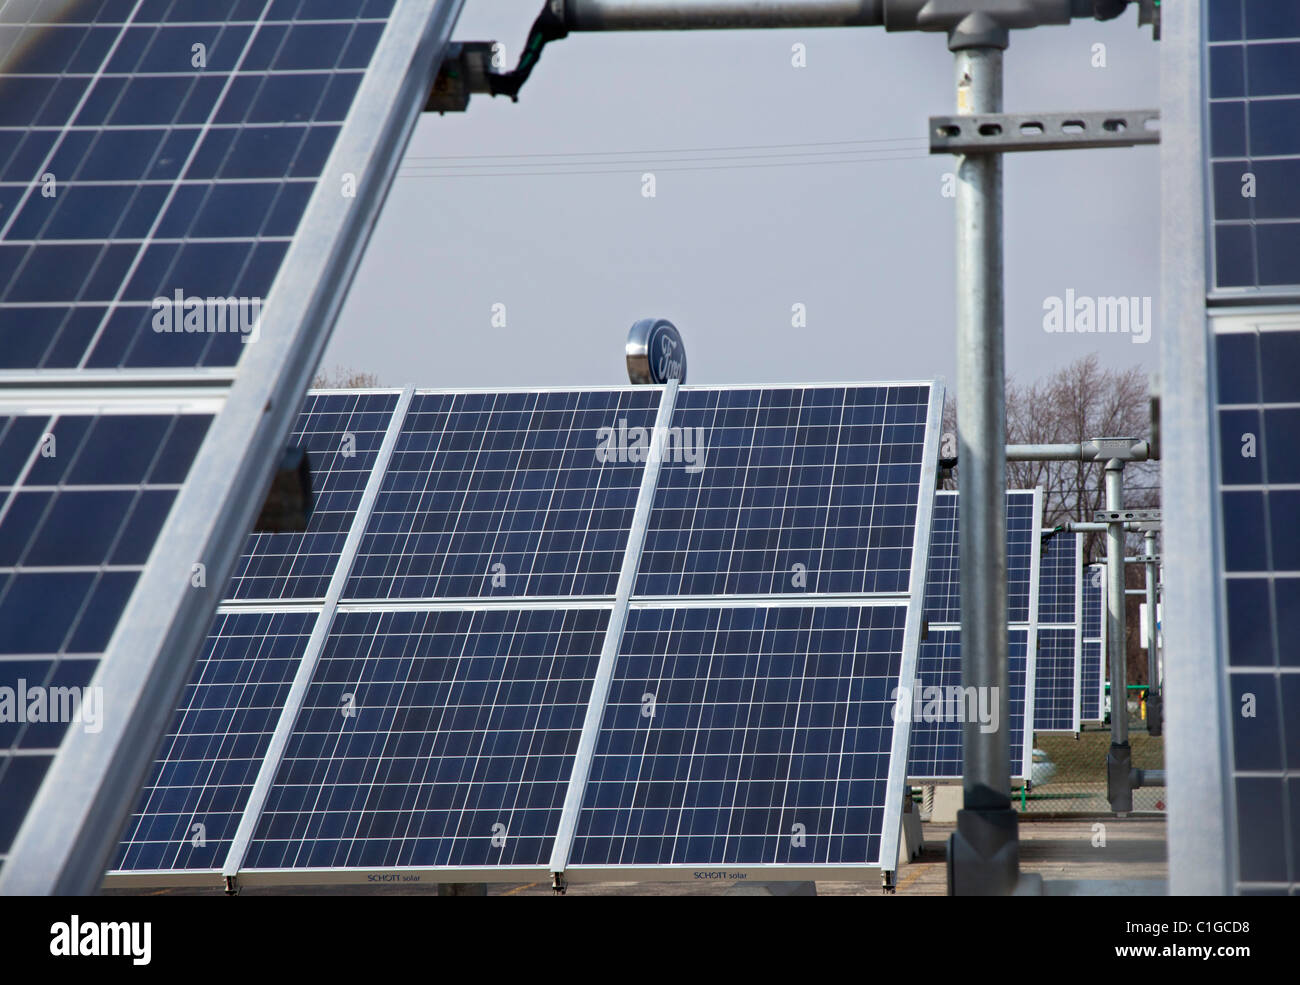 Wayne, Michigan - A 500-kilowatt solar array helps power Ford Motor Co.'s Michigan Assembly Plant. - Stock Image